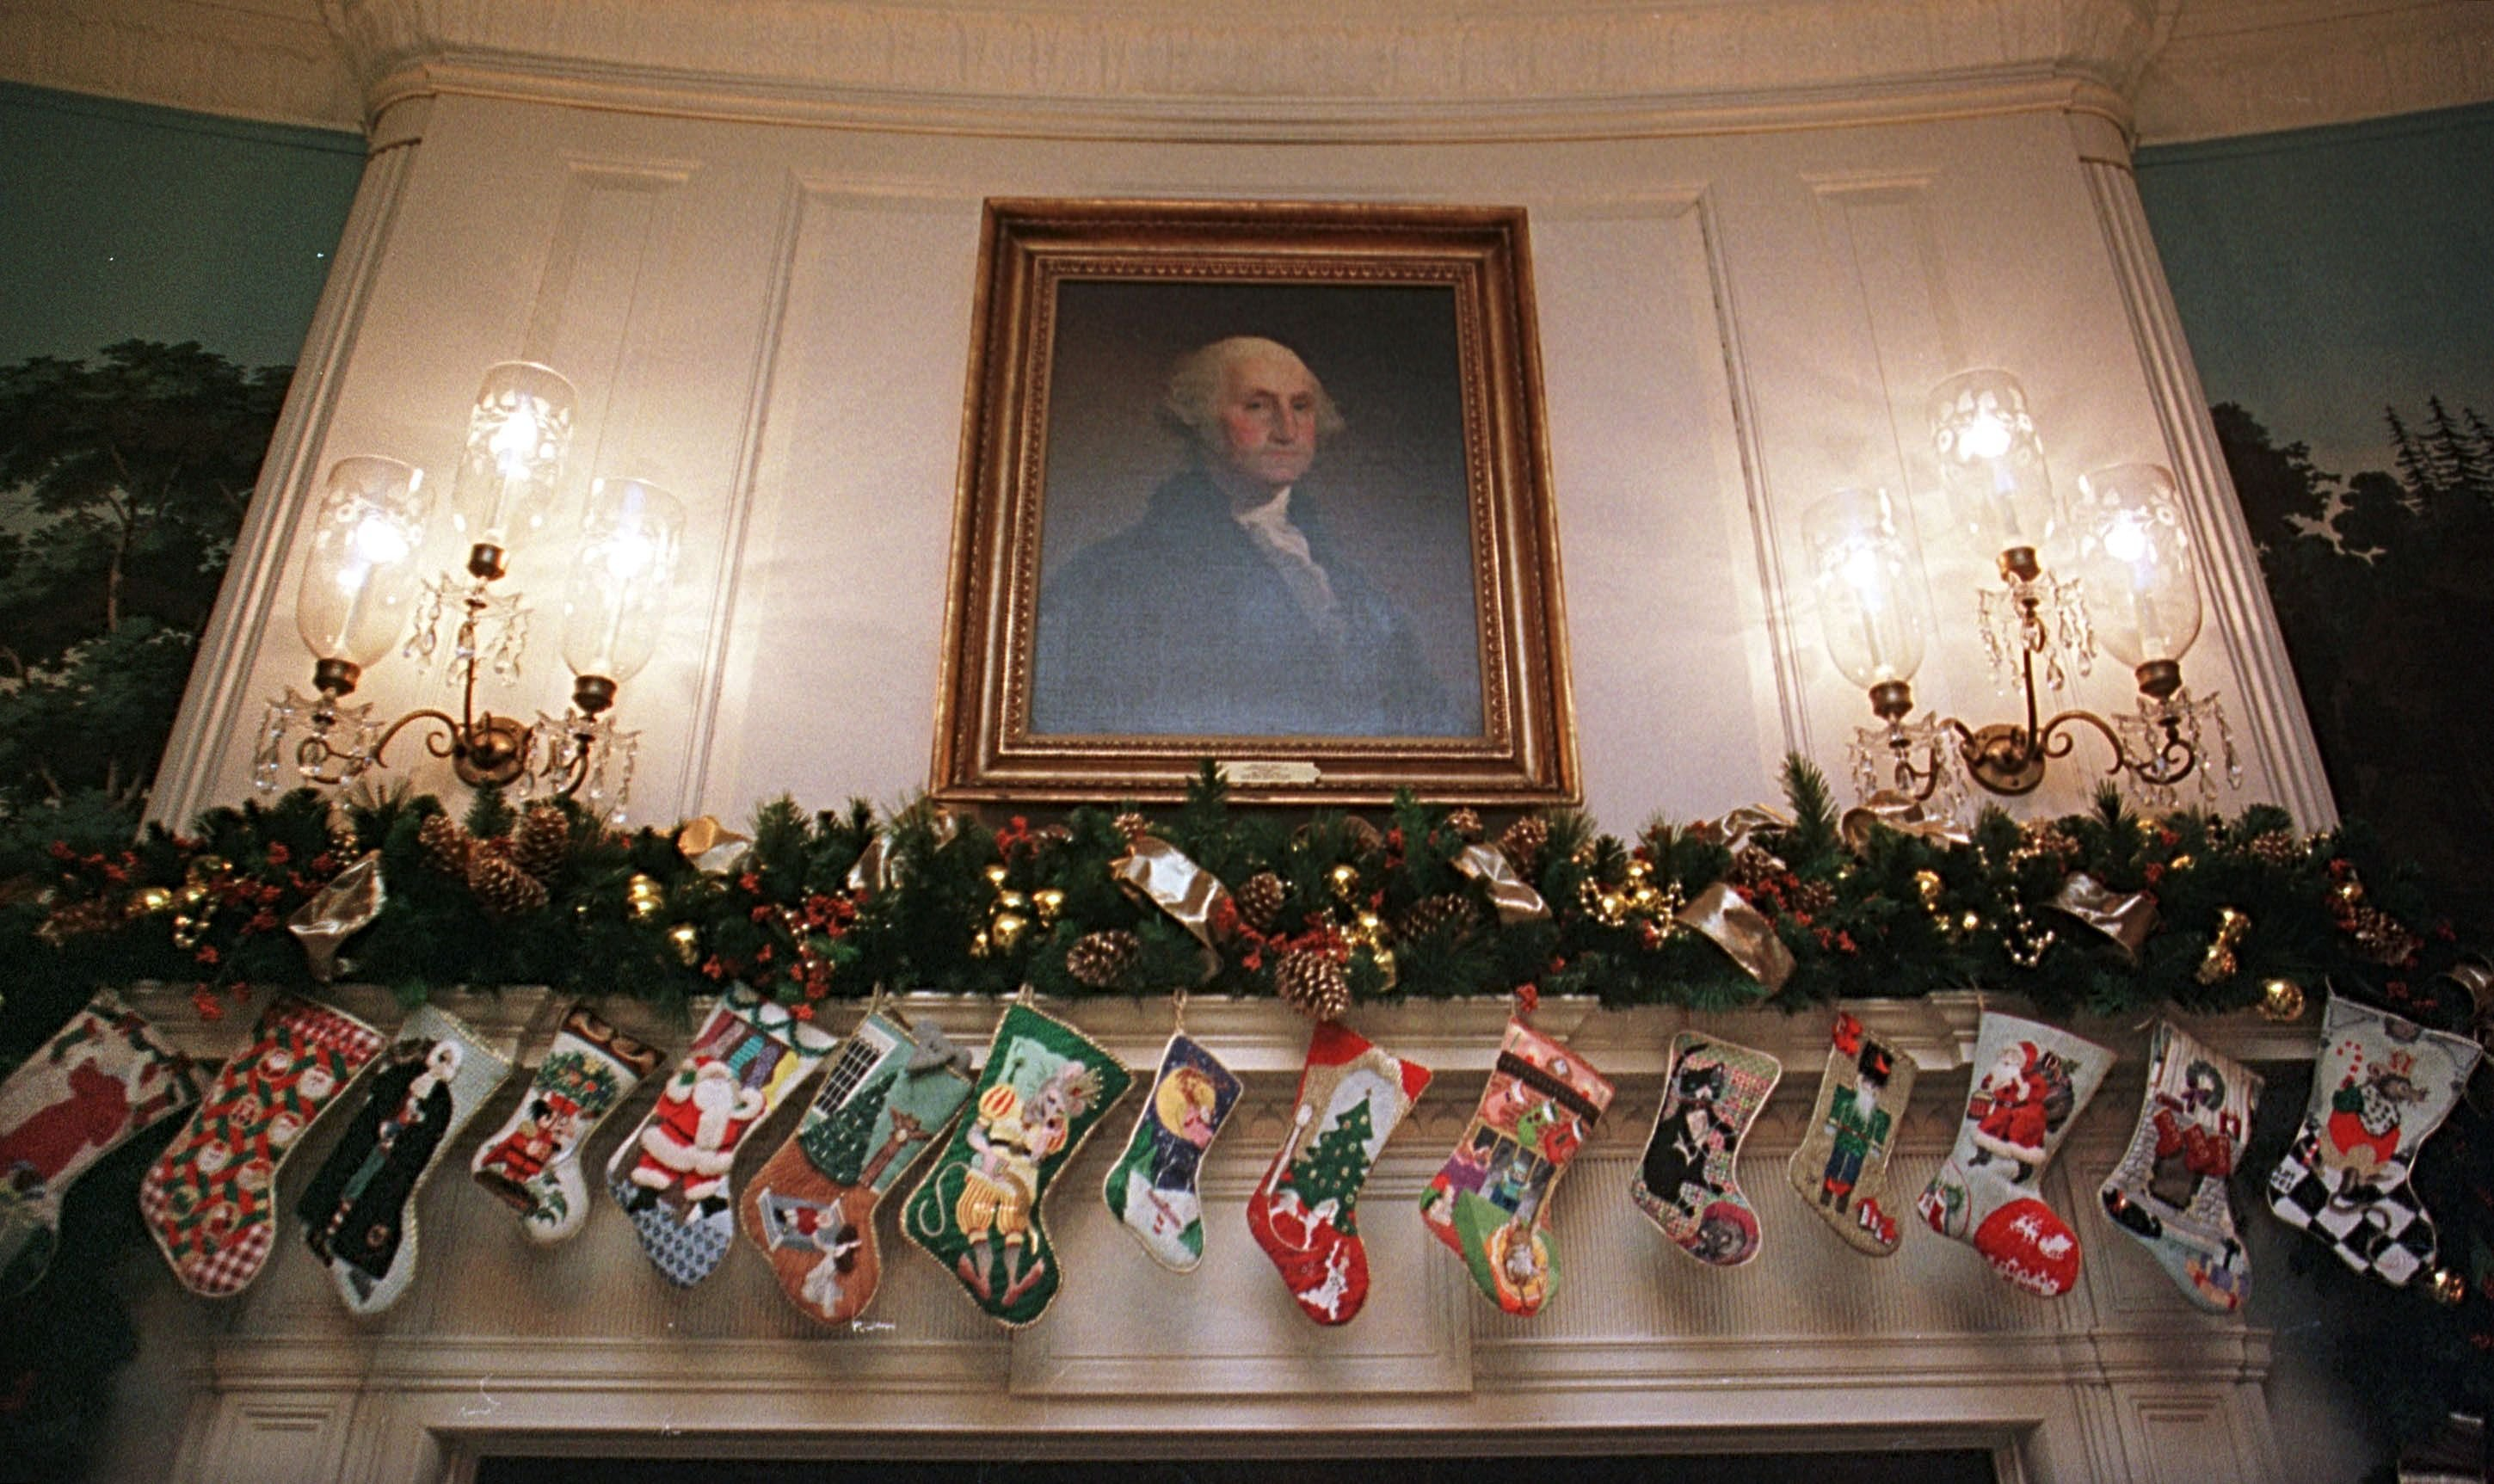 Christmas socks hang on the fireplace below a portrait of President George Washington in the Diplomatic Reception Room of the White House December 4, 2000 in Washington DC.   Source: Getty Images